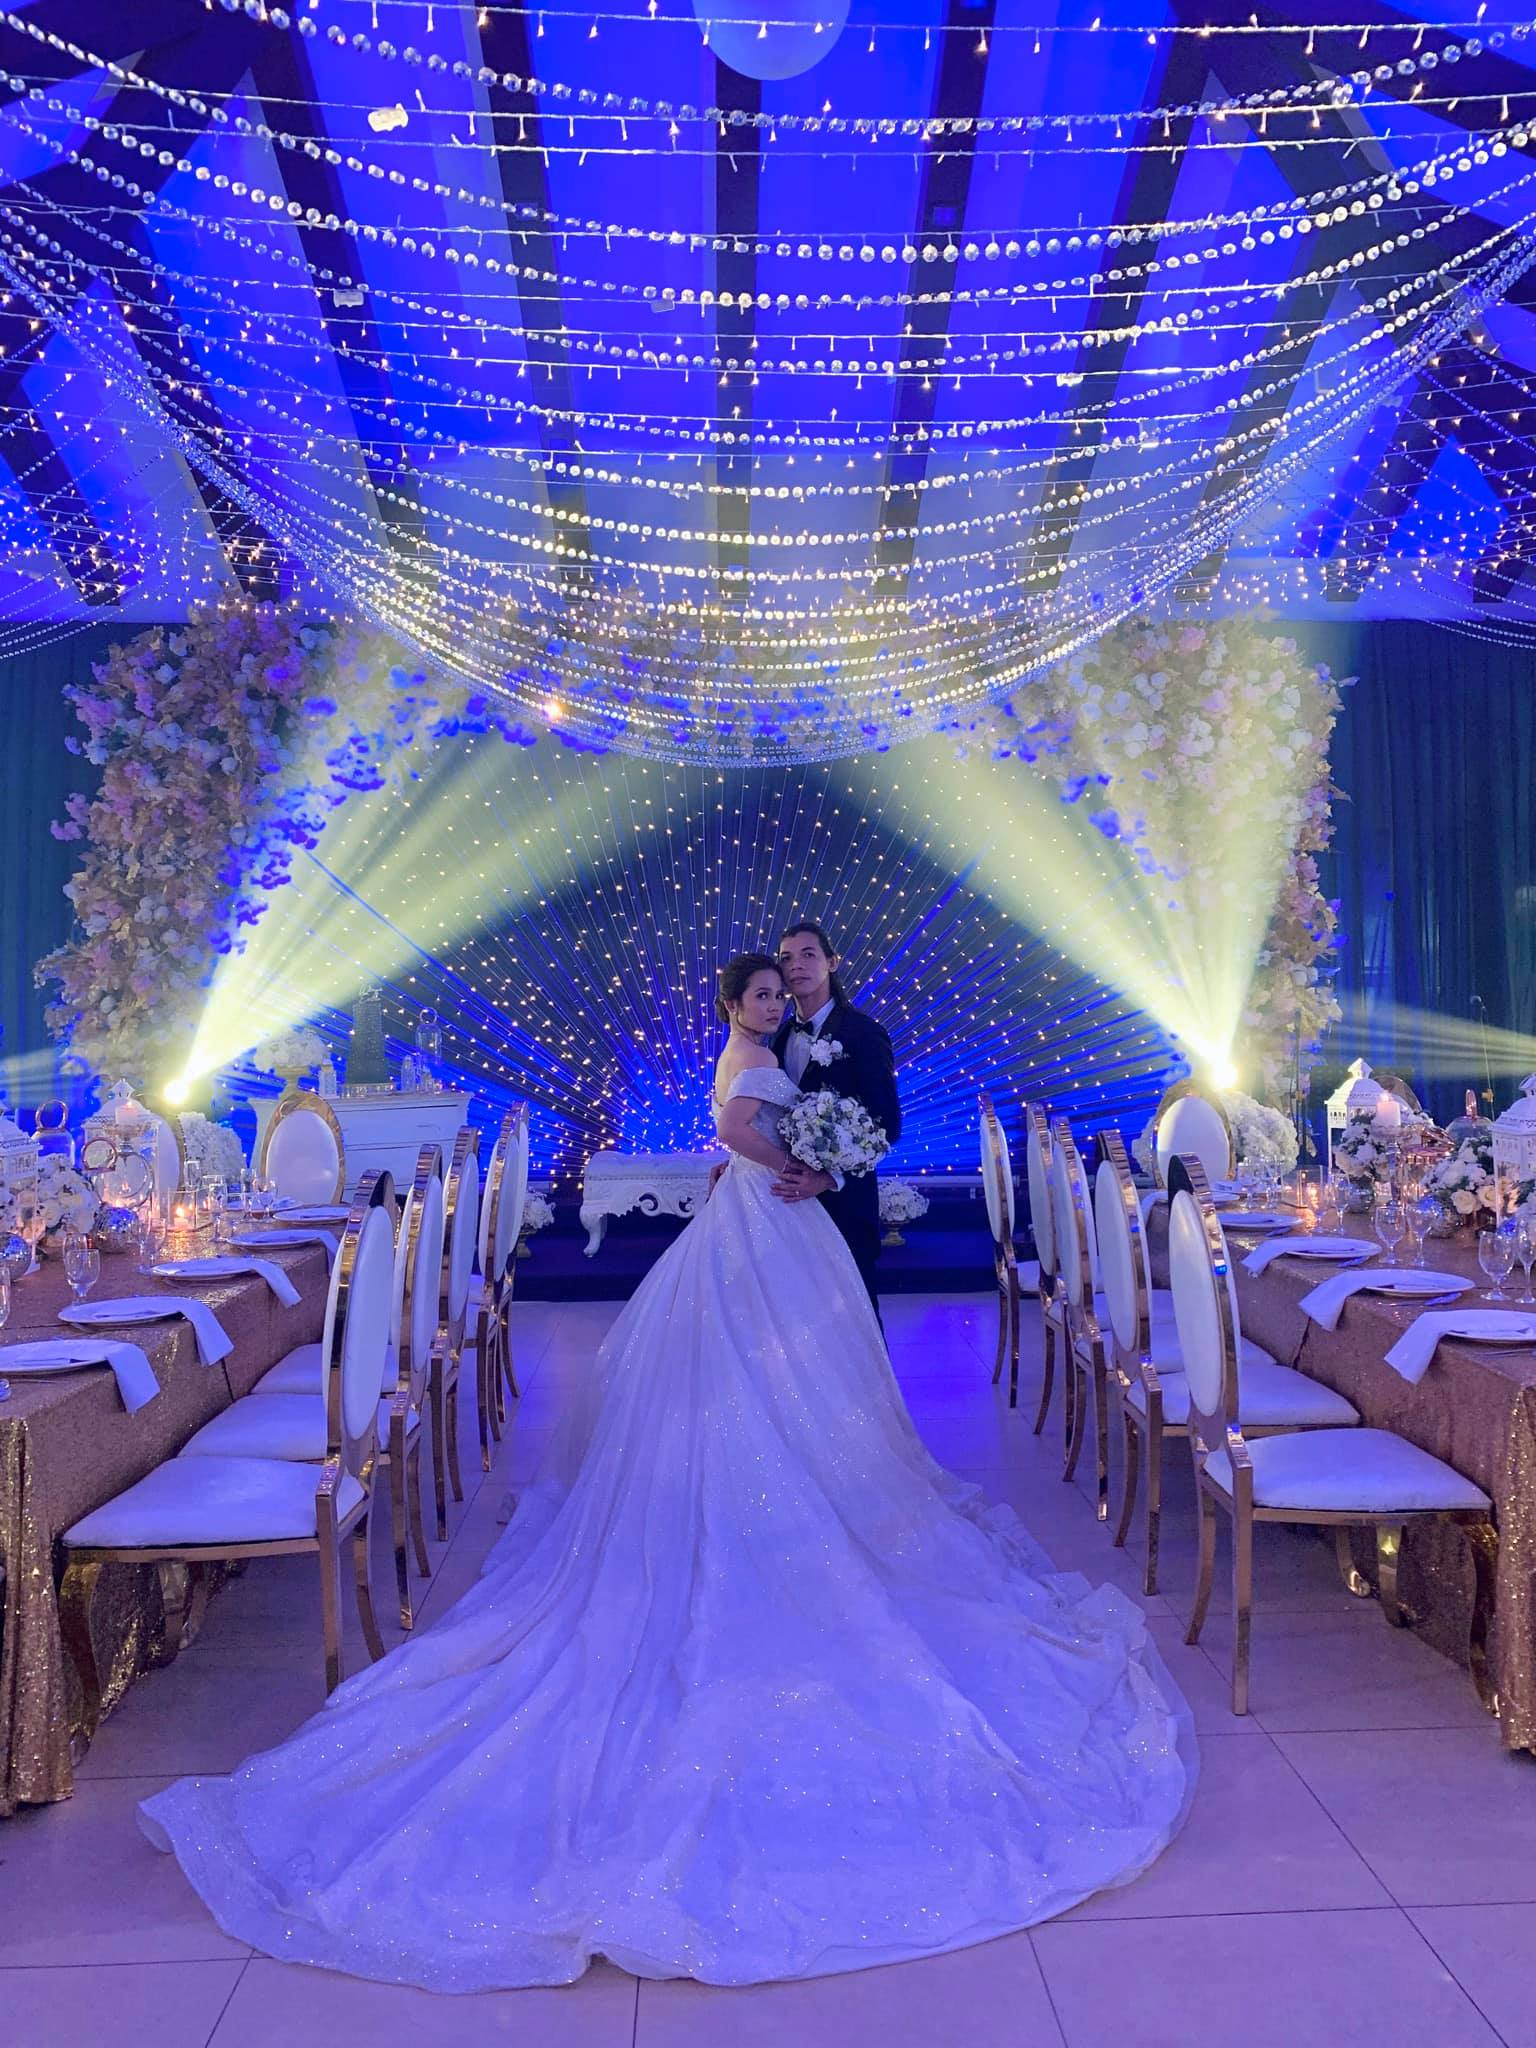 Starry Starry Night Themed Wedding Of Wrenzero Omega Chng Juaton Omega O Events By Liz